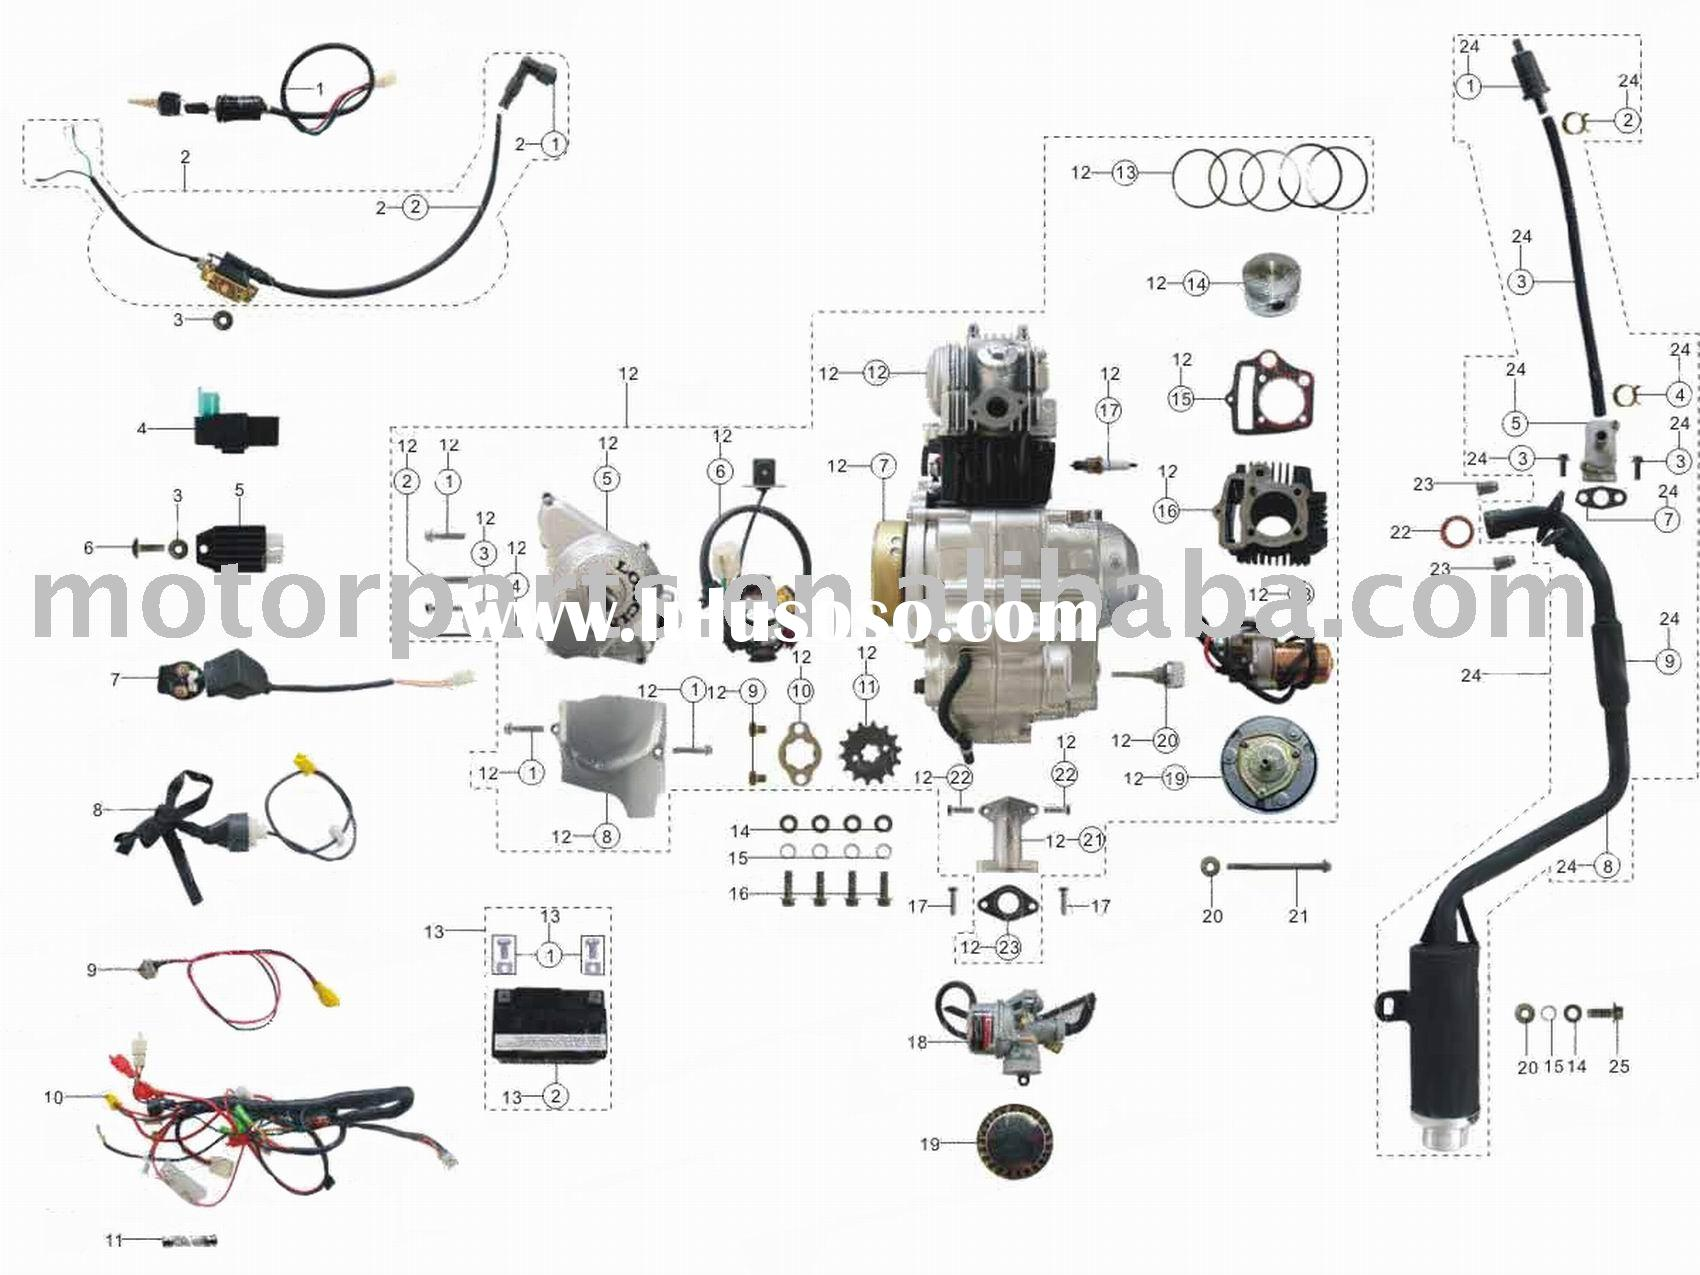 hight resolution of atv engine diagrams wiring diagram more 110cc atv engine parts diagram atv engine diagram